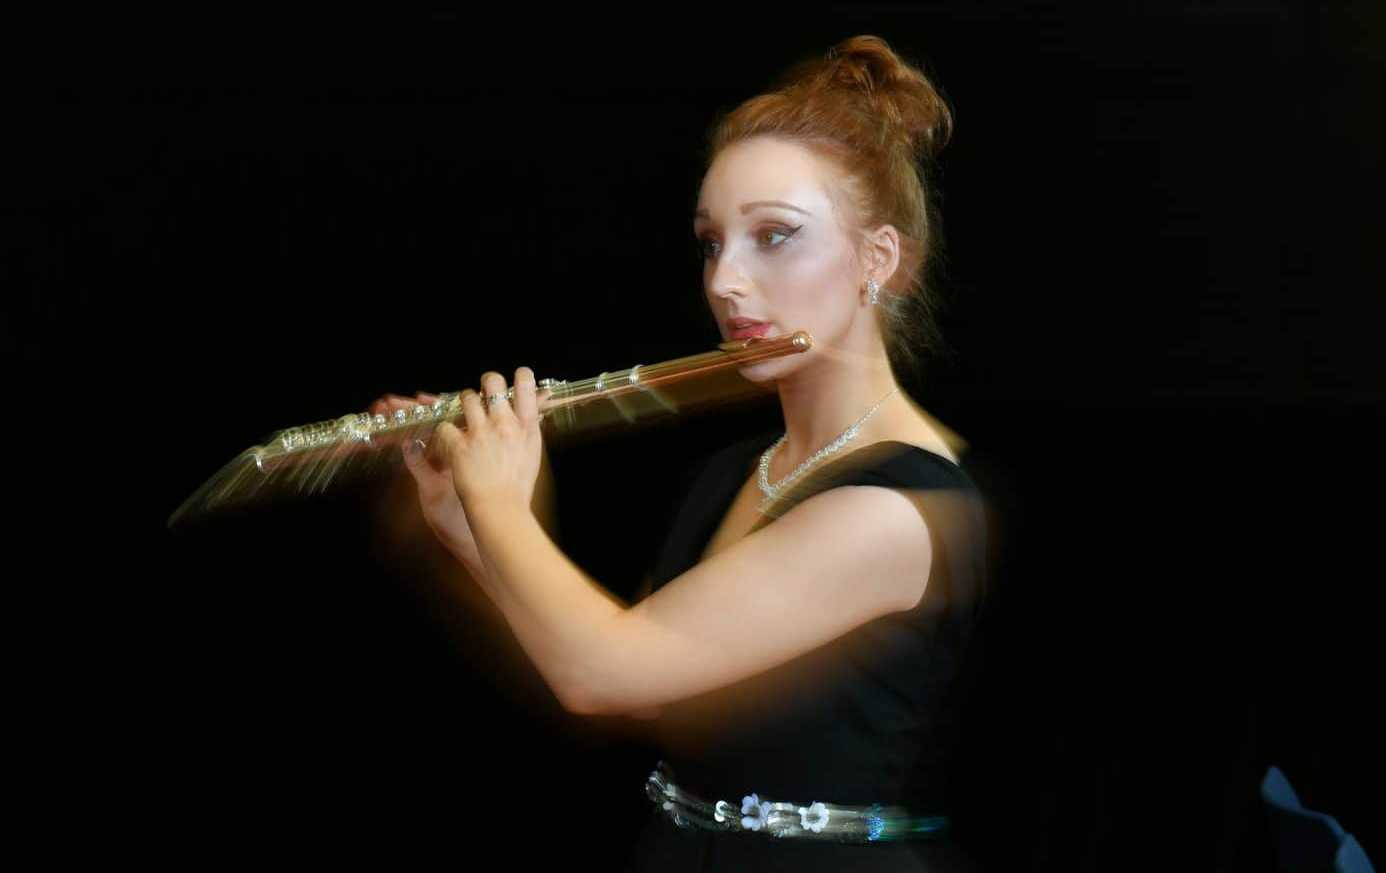 Amy Gillen - Concert and Solo Flute Performer